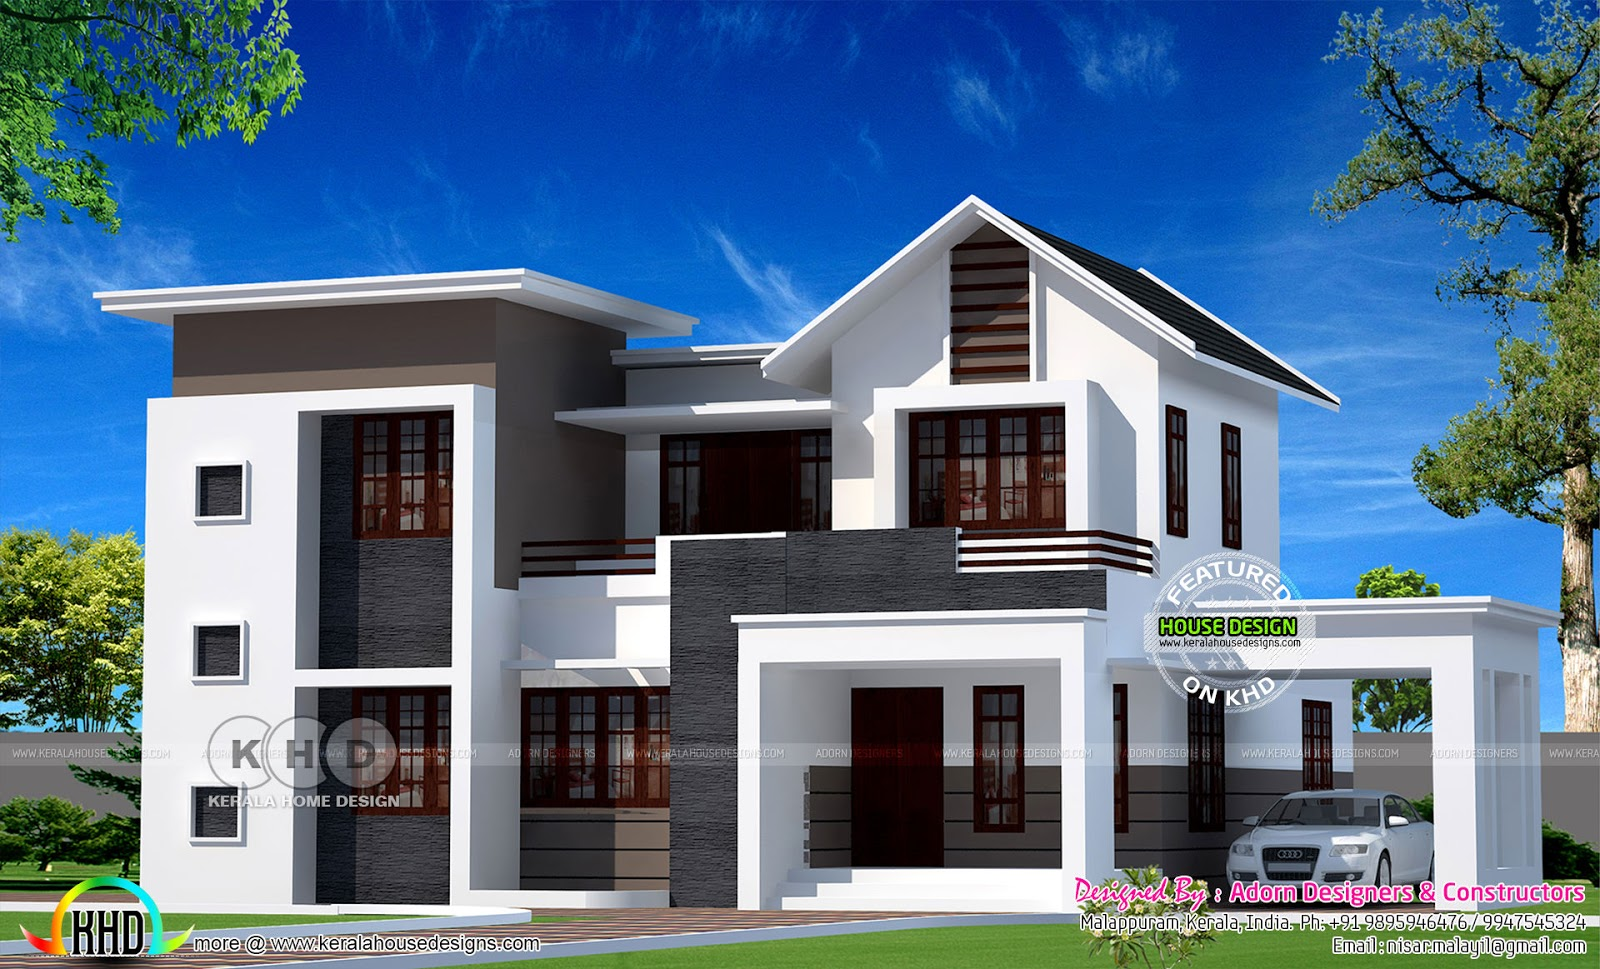 3d vs real home design kerala home design and floor plans